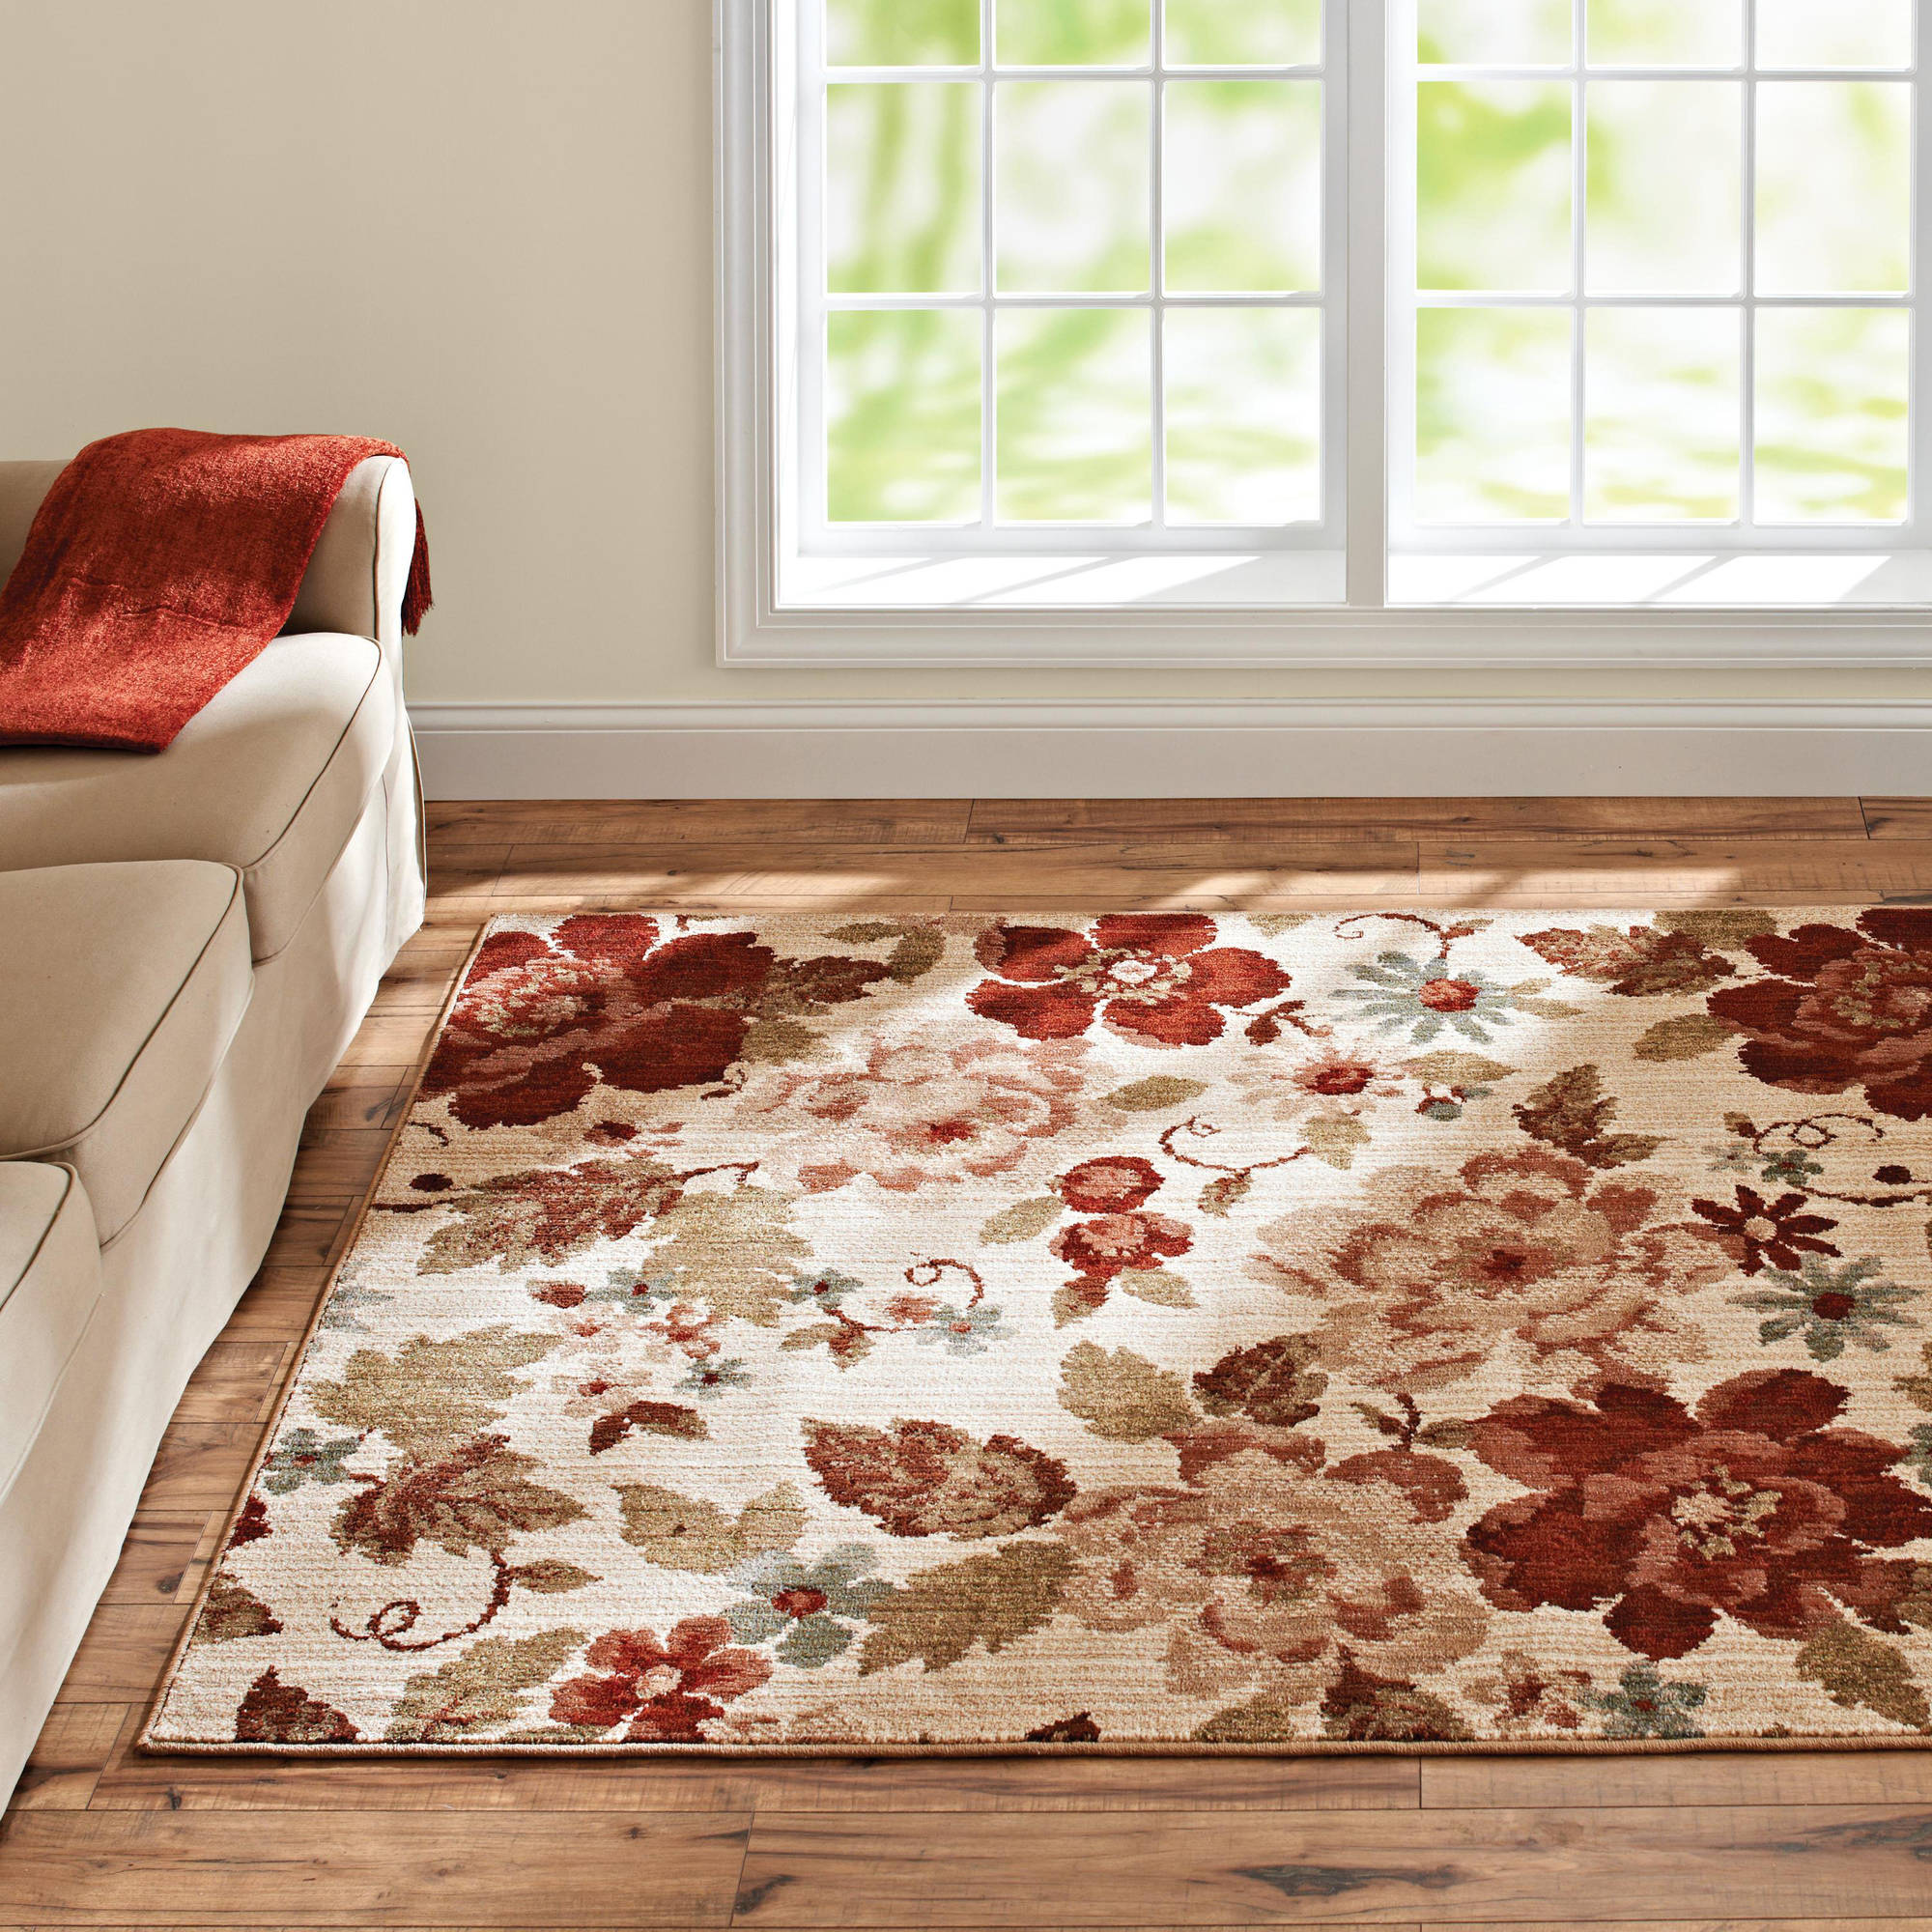 Better Homes and Gardens Floral Olefin Area Rug